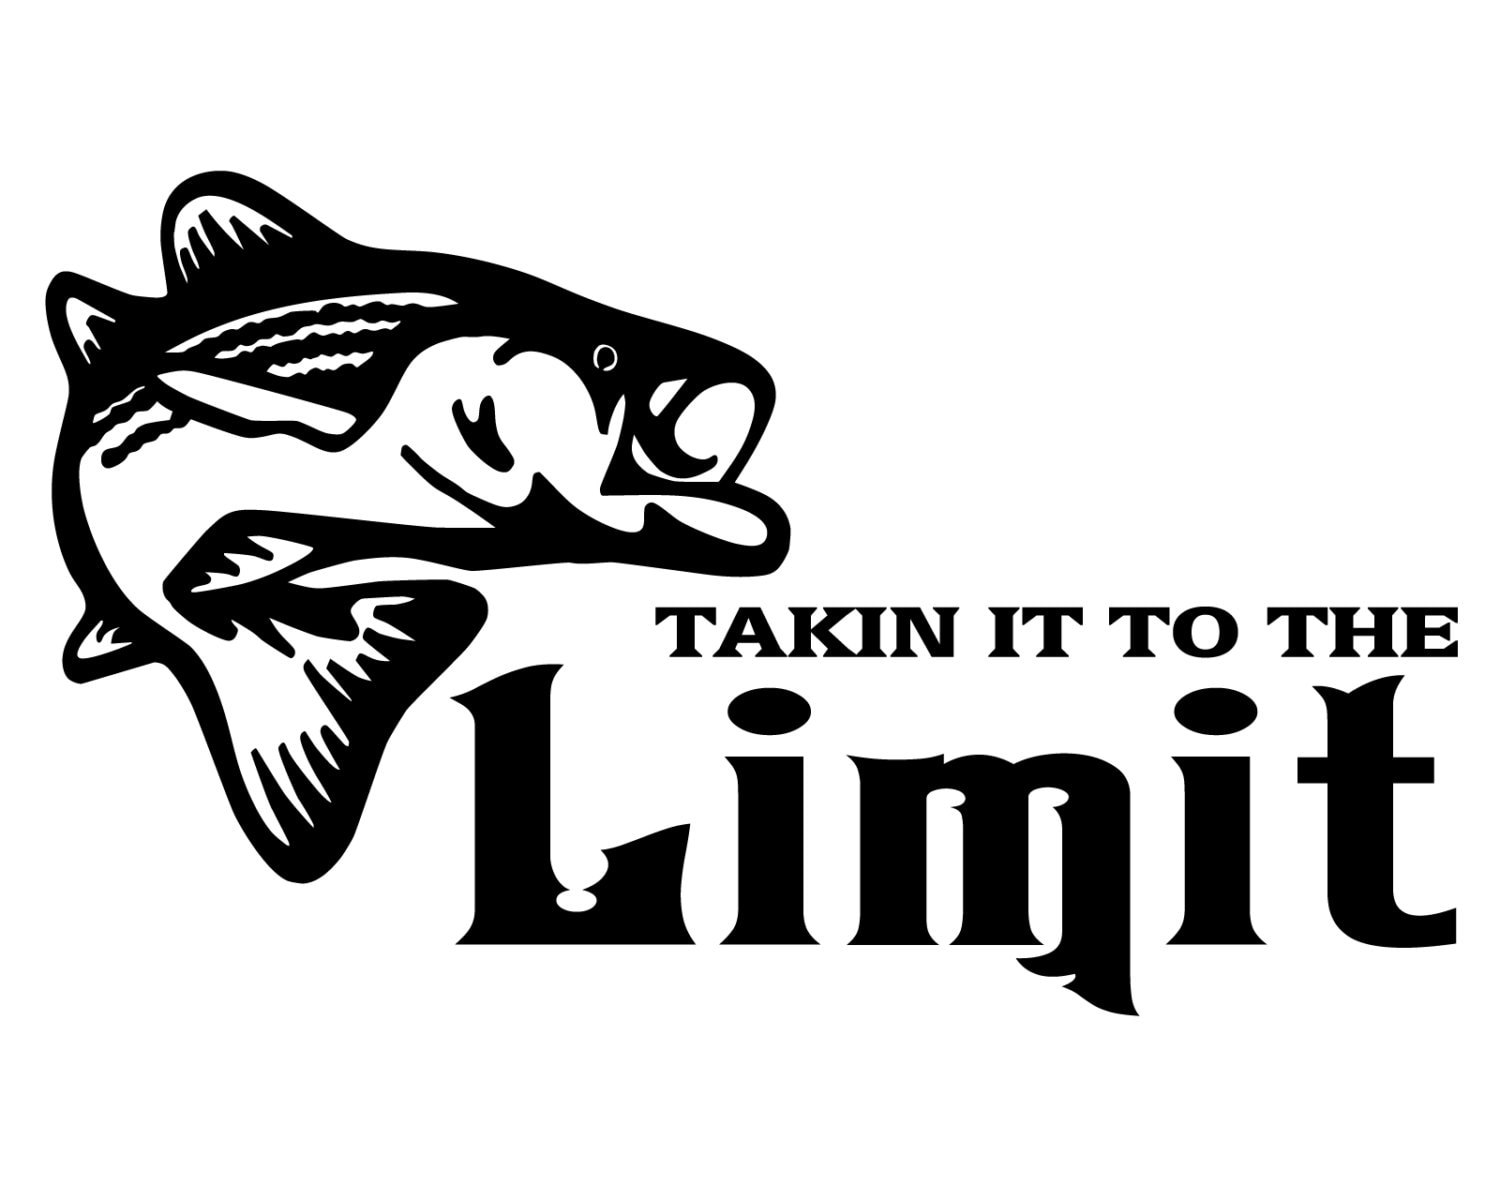 bass fishing decal takin it to the limit fish sticker bass etsy 24 FT Thor Motorhomes